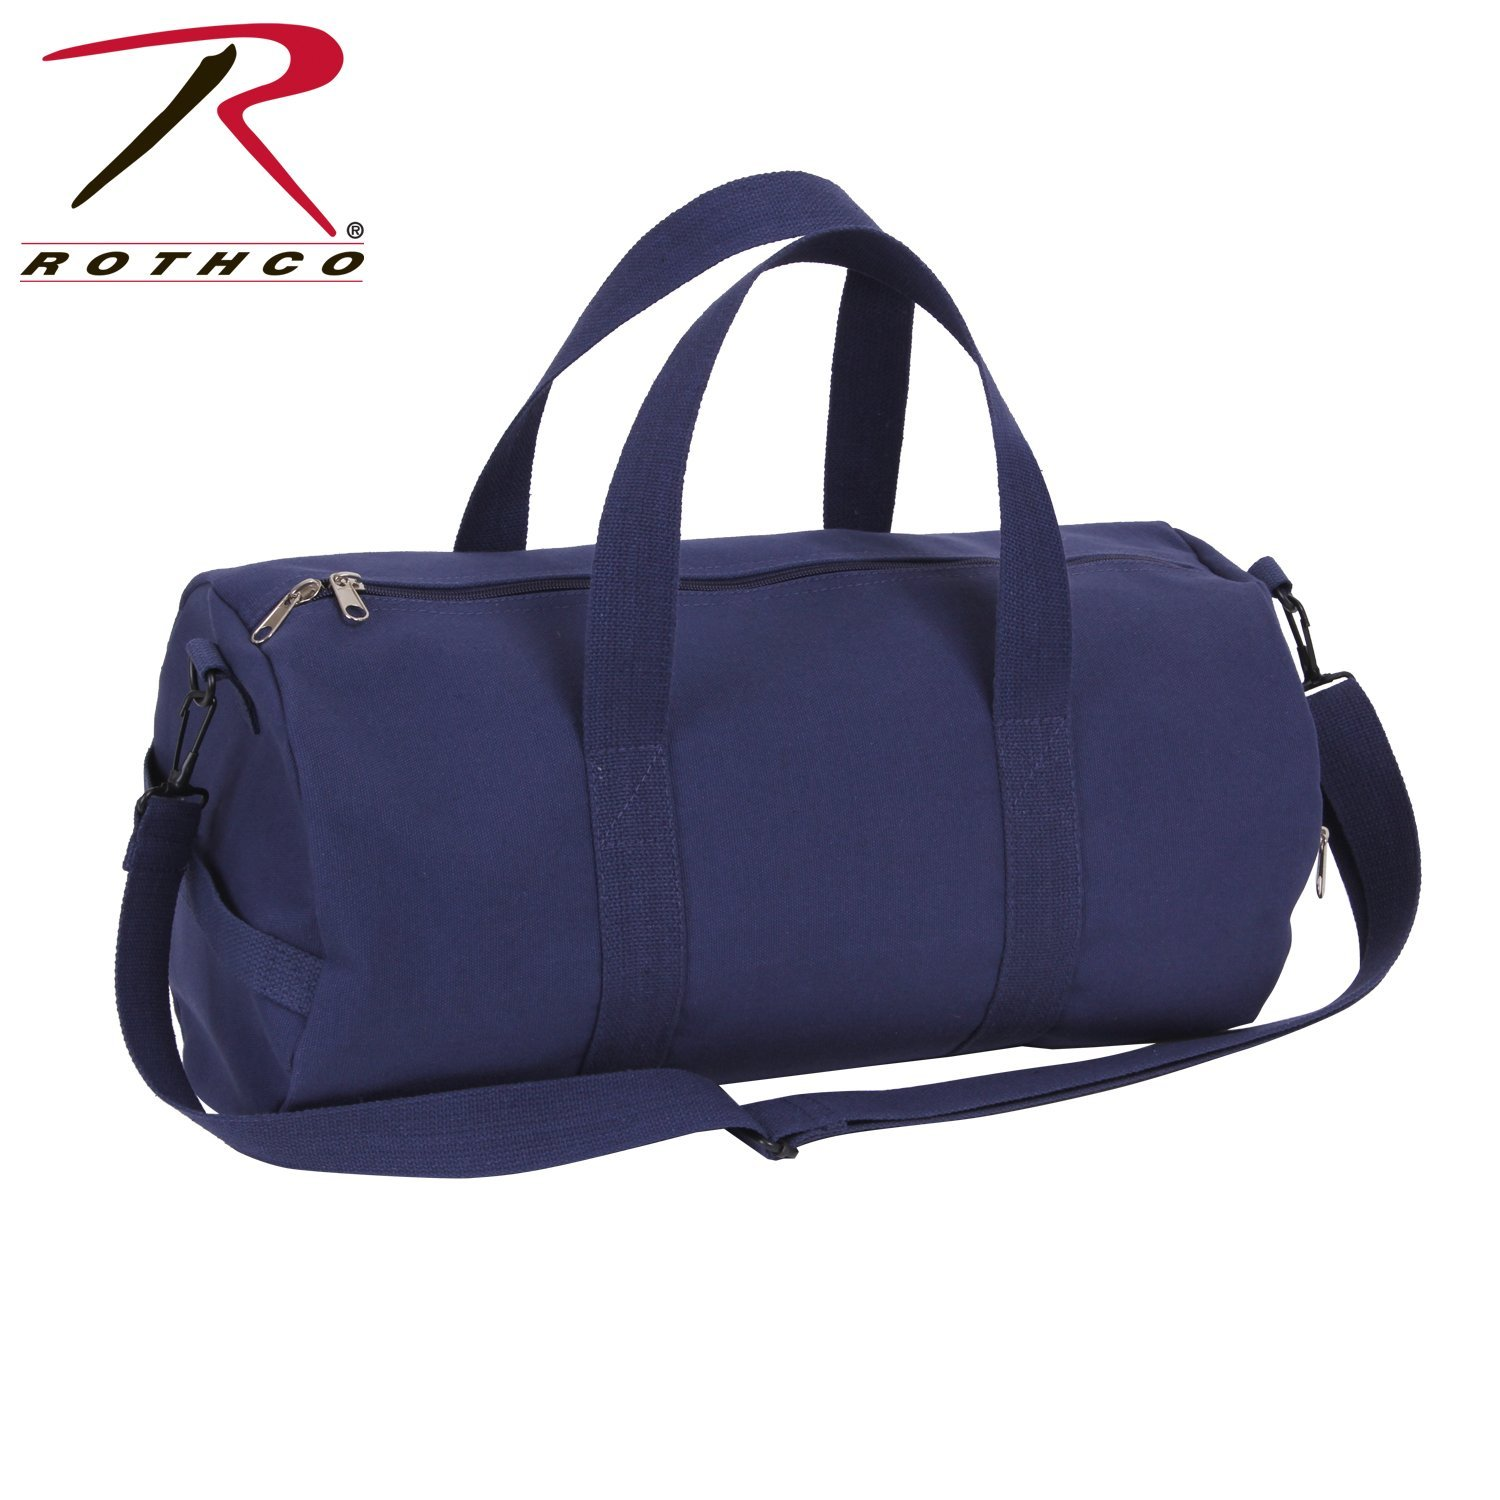 Rothco Canvas Shoulder Duffle Bag 24 Inch, Navy Blue by Rothco